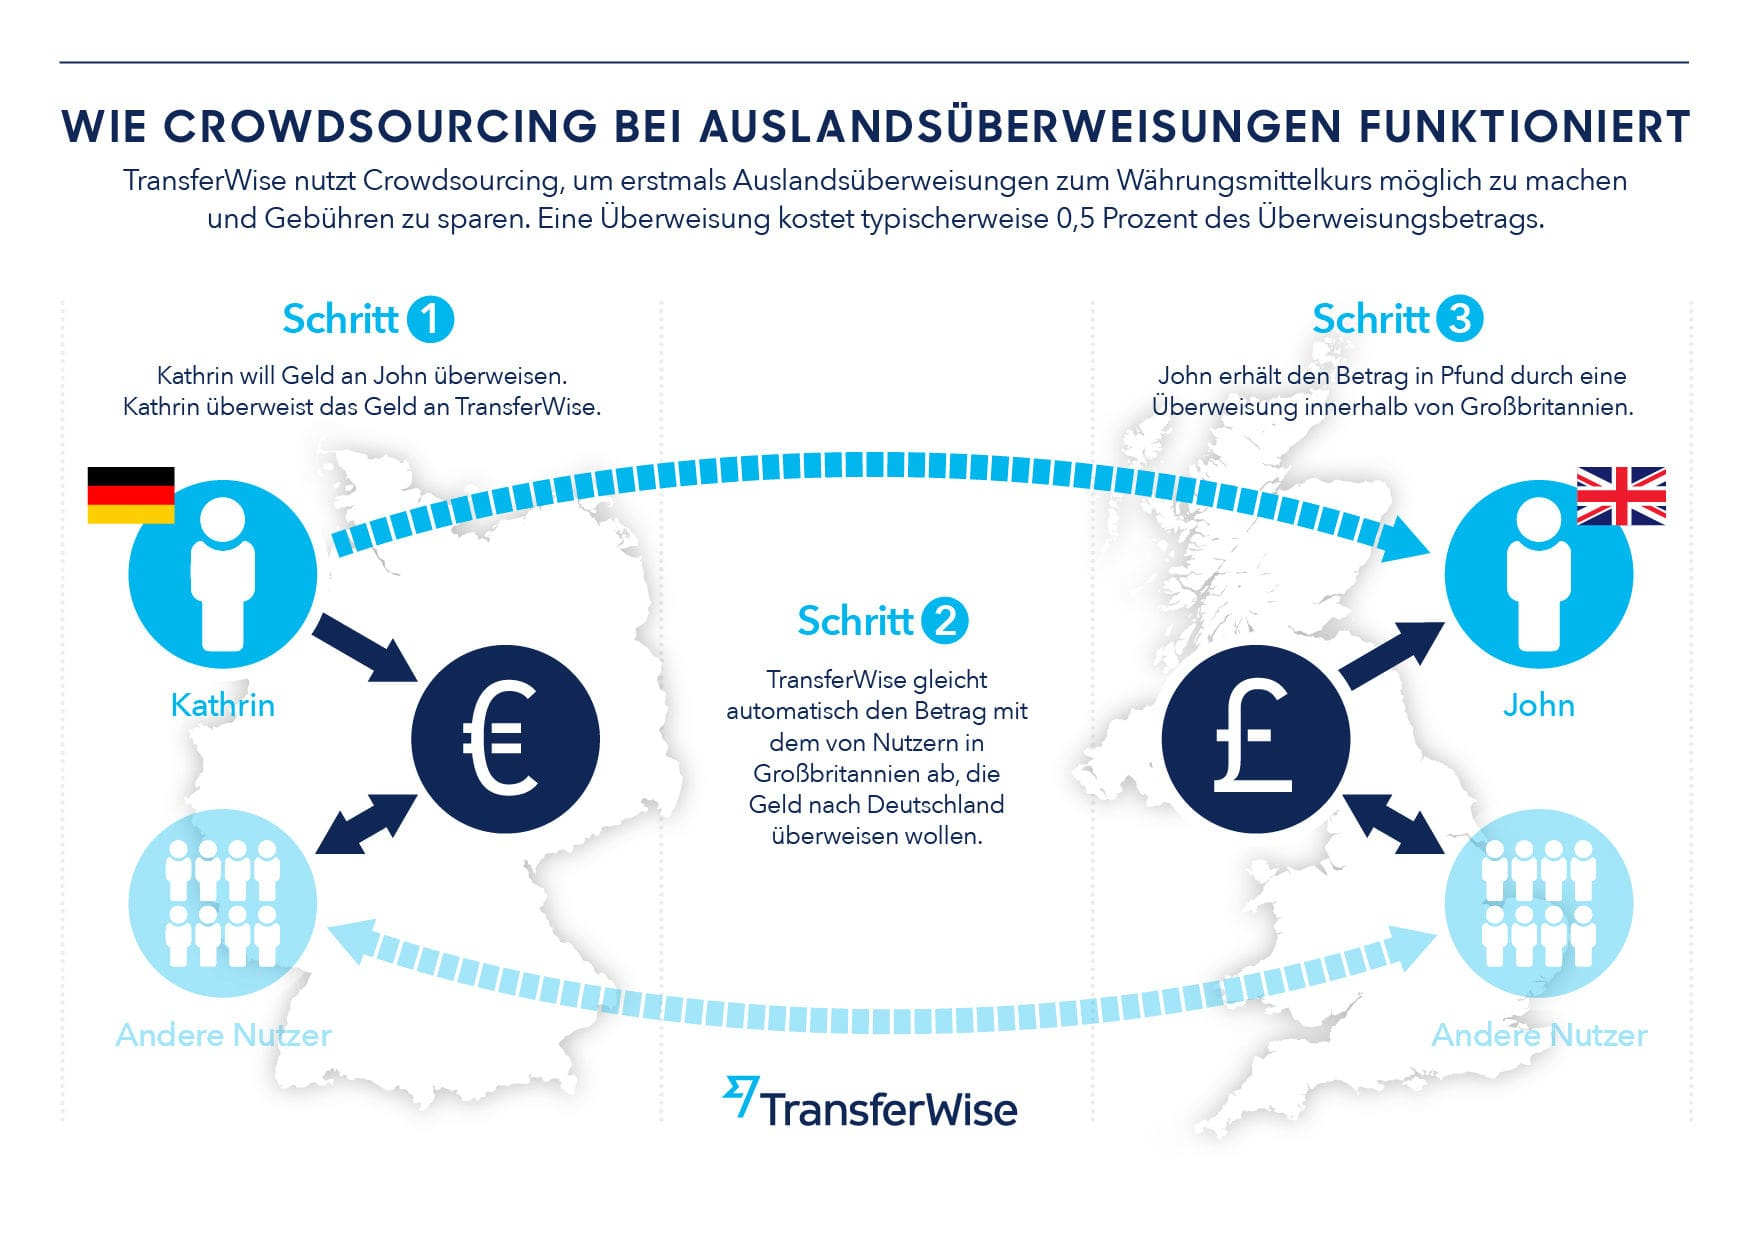 So funktioniert TransferWise